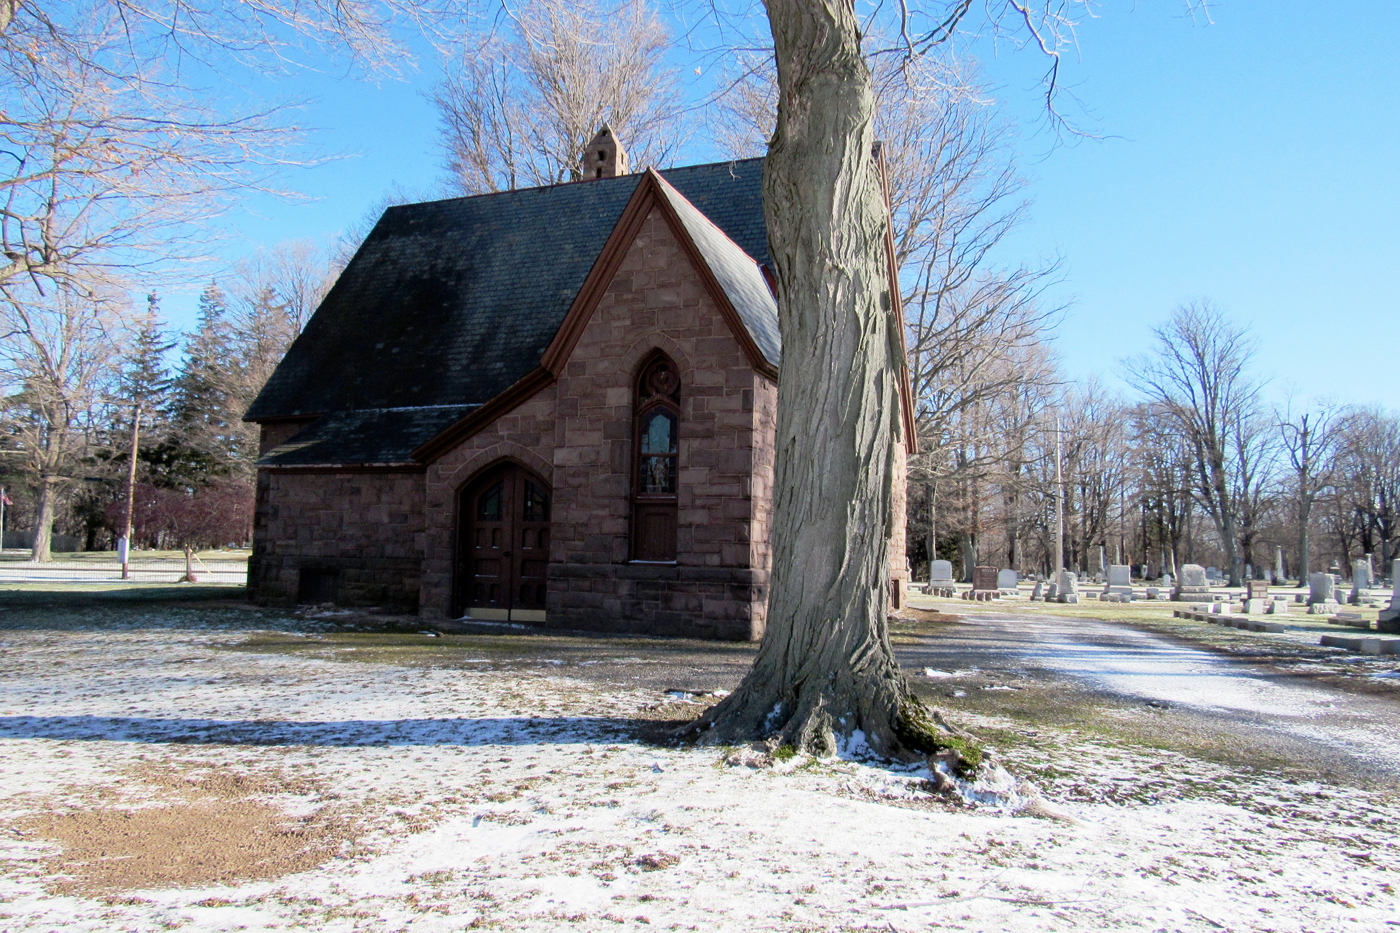 The Hillside Cemetery Chapel in Clarendon, located on State Route 237 just outside the Village of Holley.  It was placed on the Register of Historic Places in 2013 and a recent state grant will help pay for much needed restoration work. K. Gabalski photo